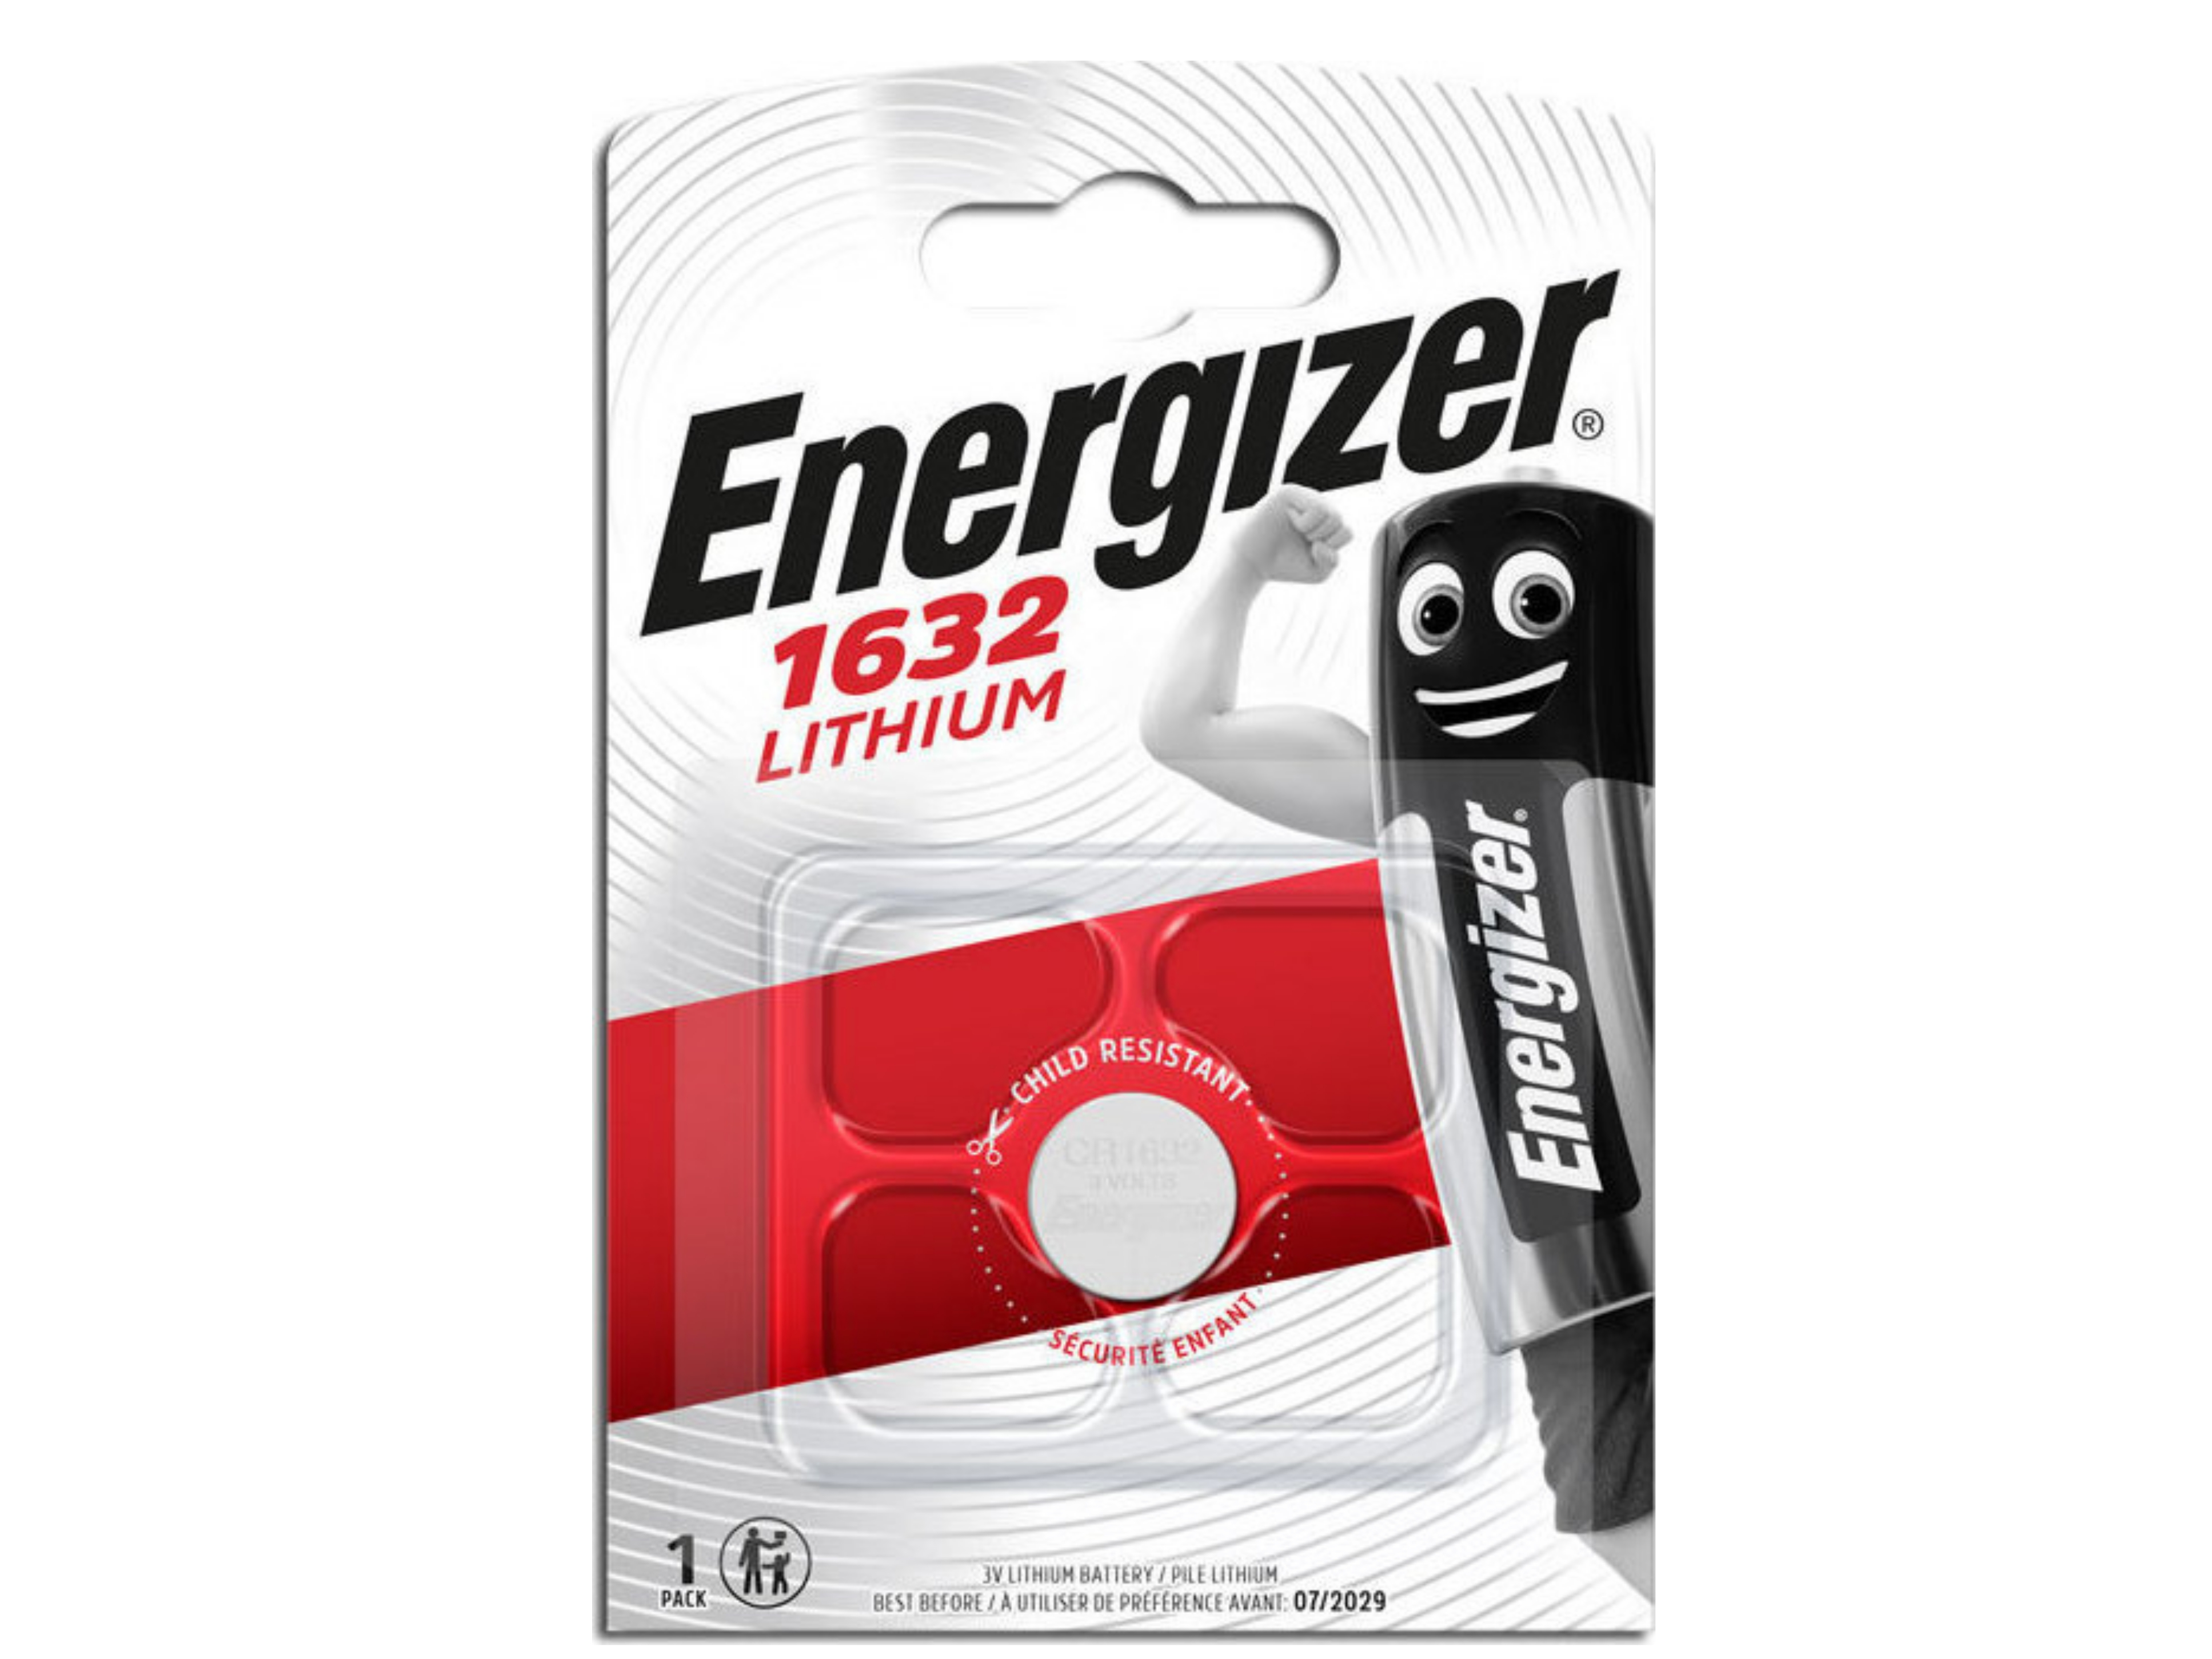 Buttoncell Lithium Energizer CR1632 Τεμ. 1